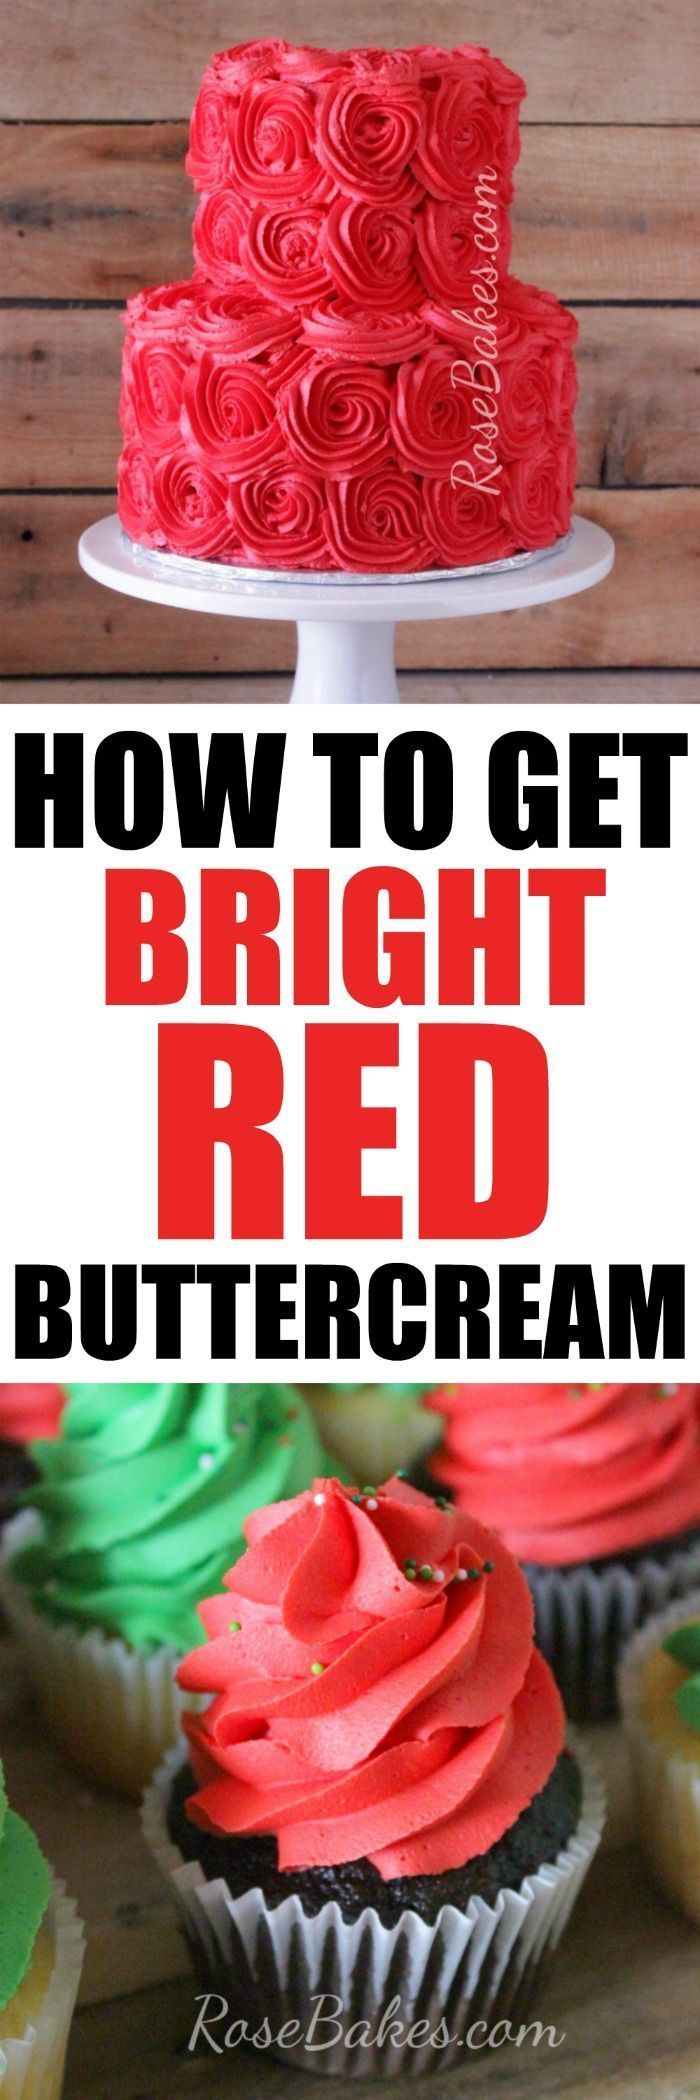 Tips on How to Get Bright Red Buttercream (Baking Tools)